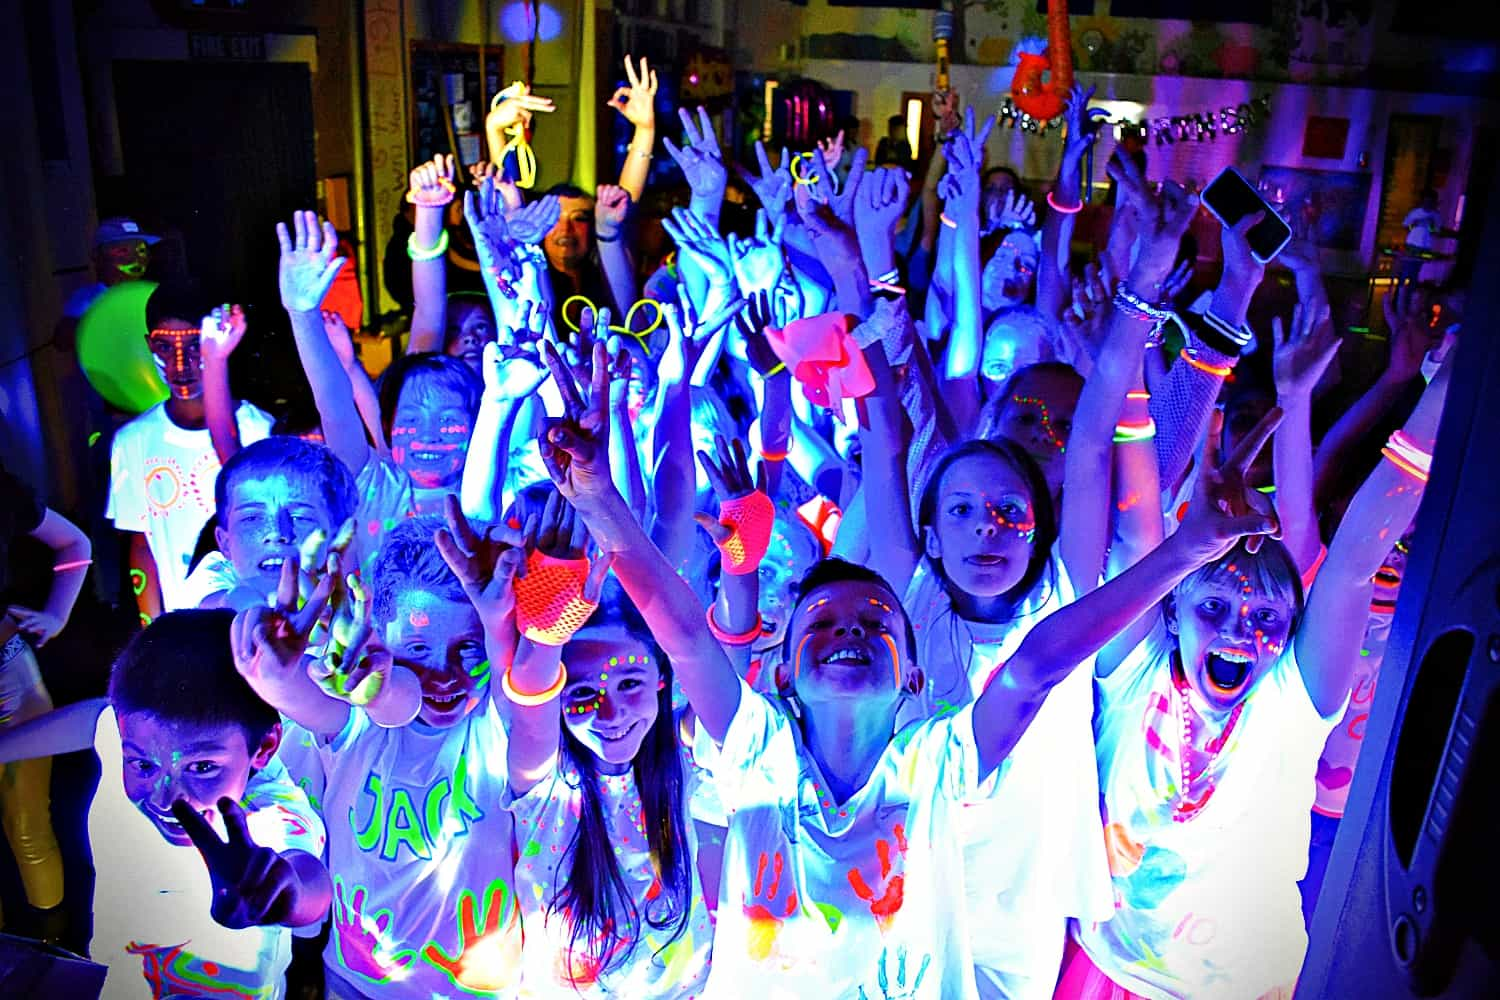 The best UV party in Essex - MMENT